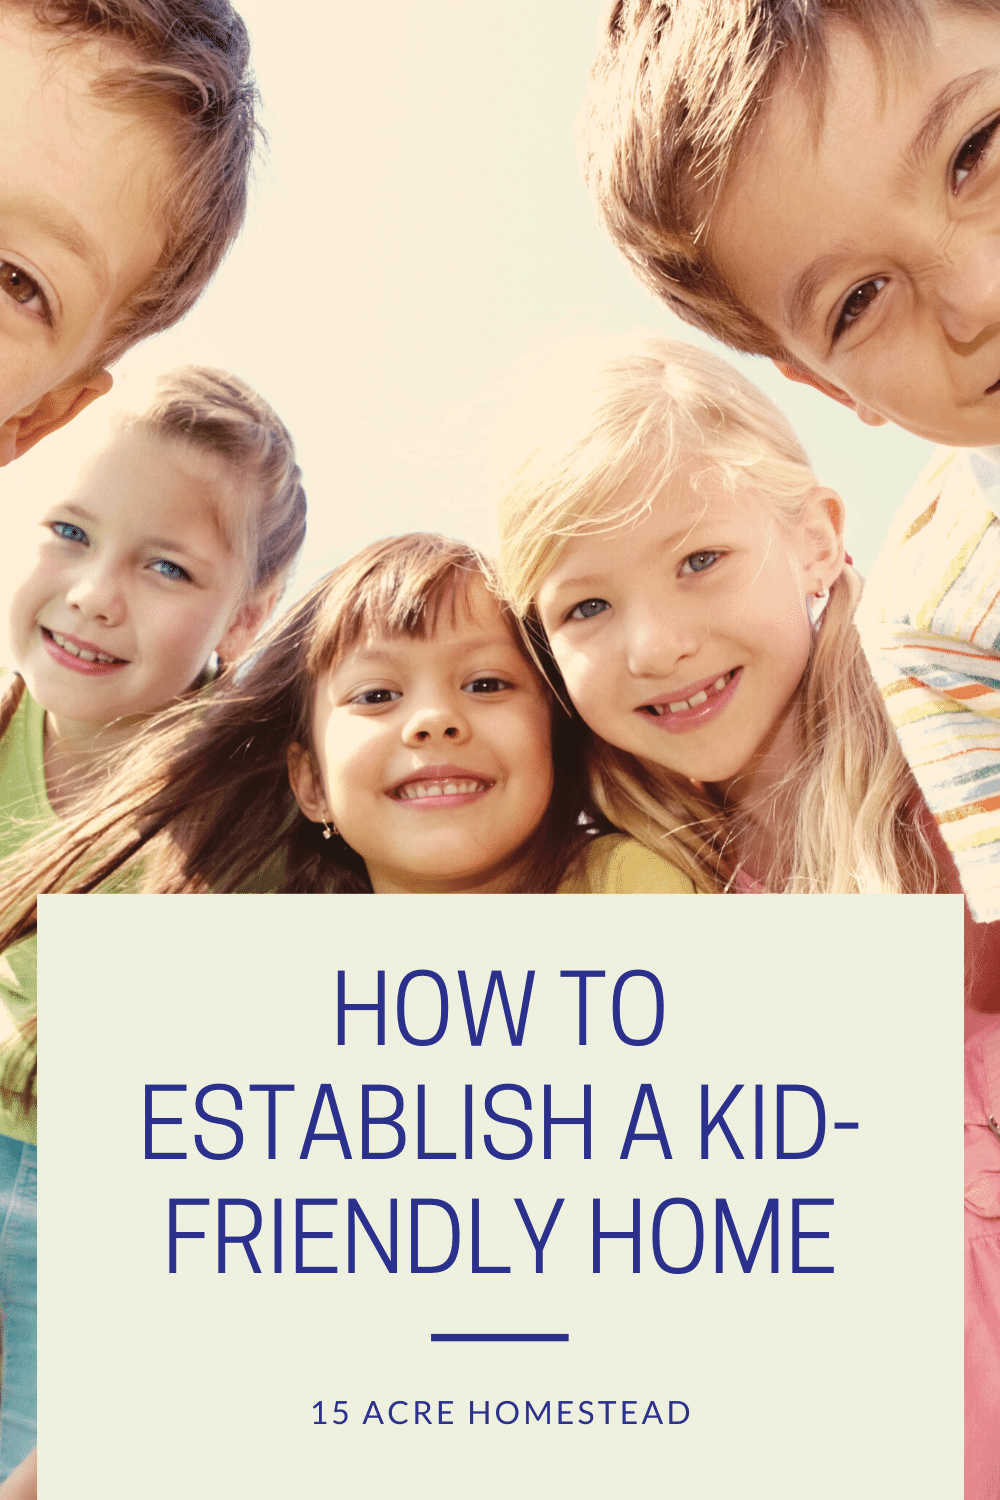 Making your home more kid-friendly can be easy by following the tips here.